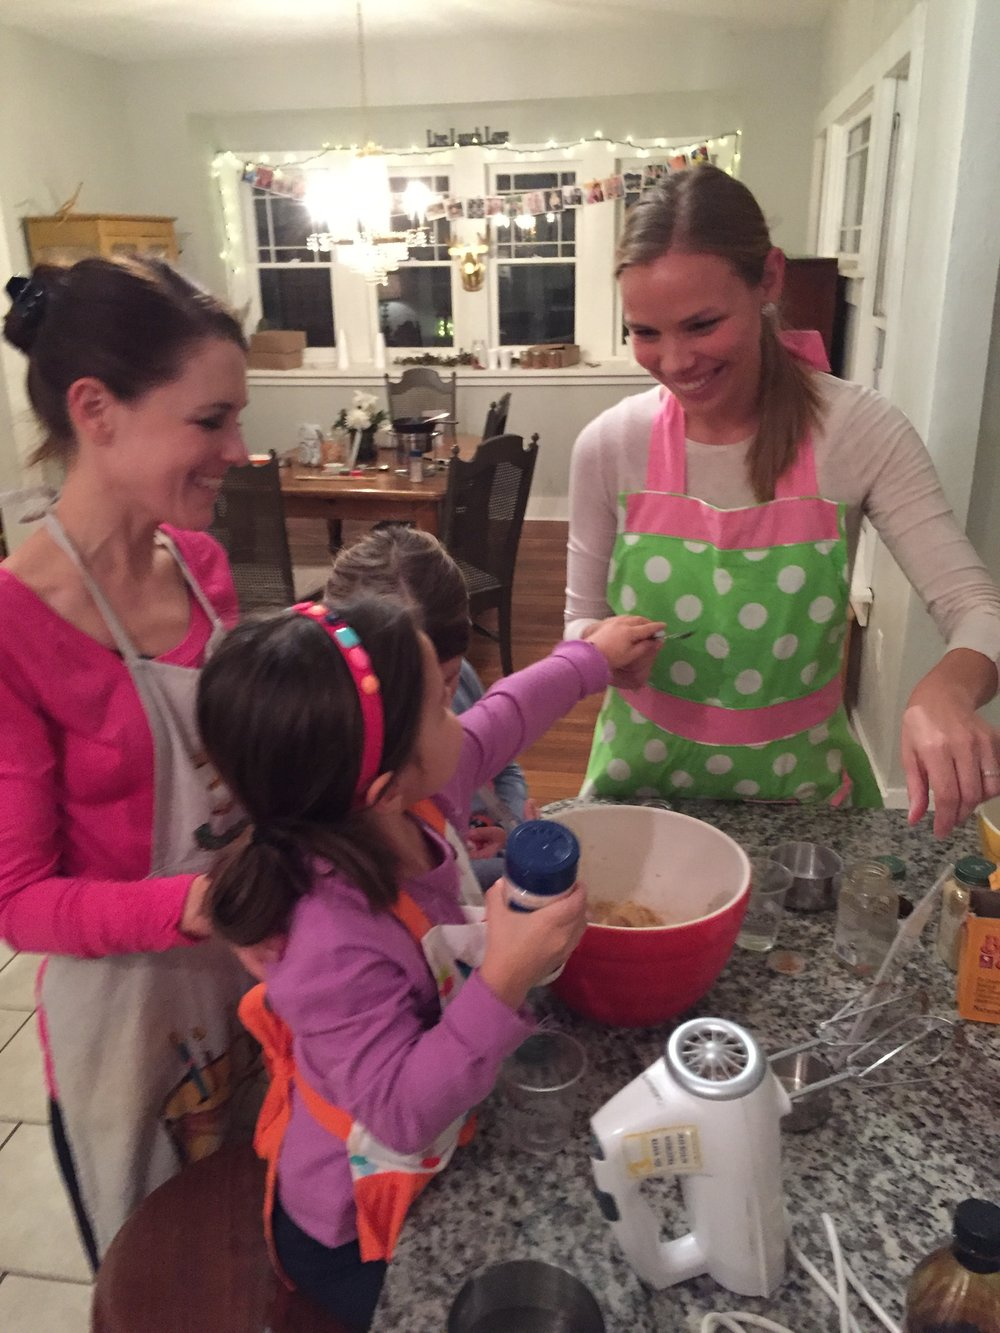 Moms and Daughters making some gingersnaps!